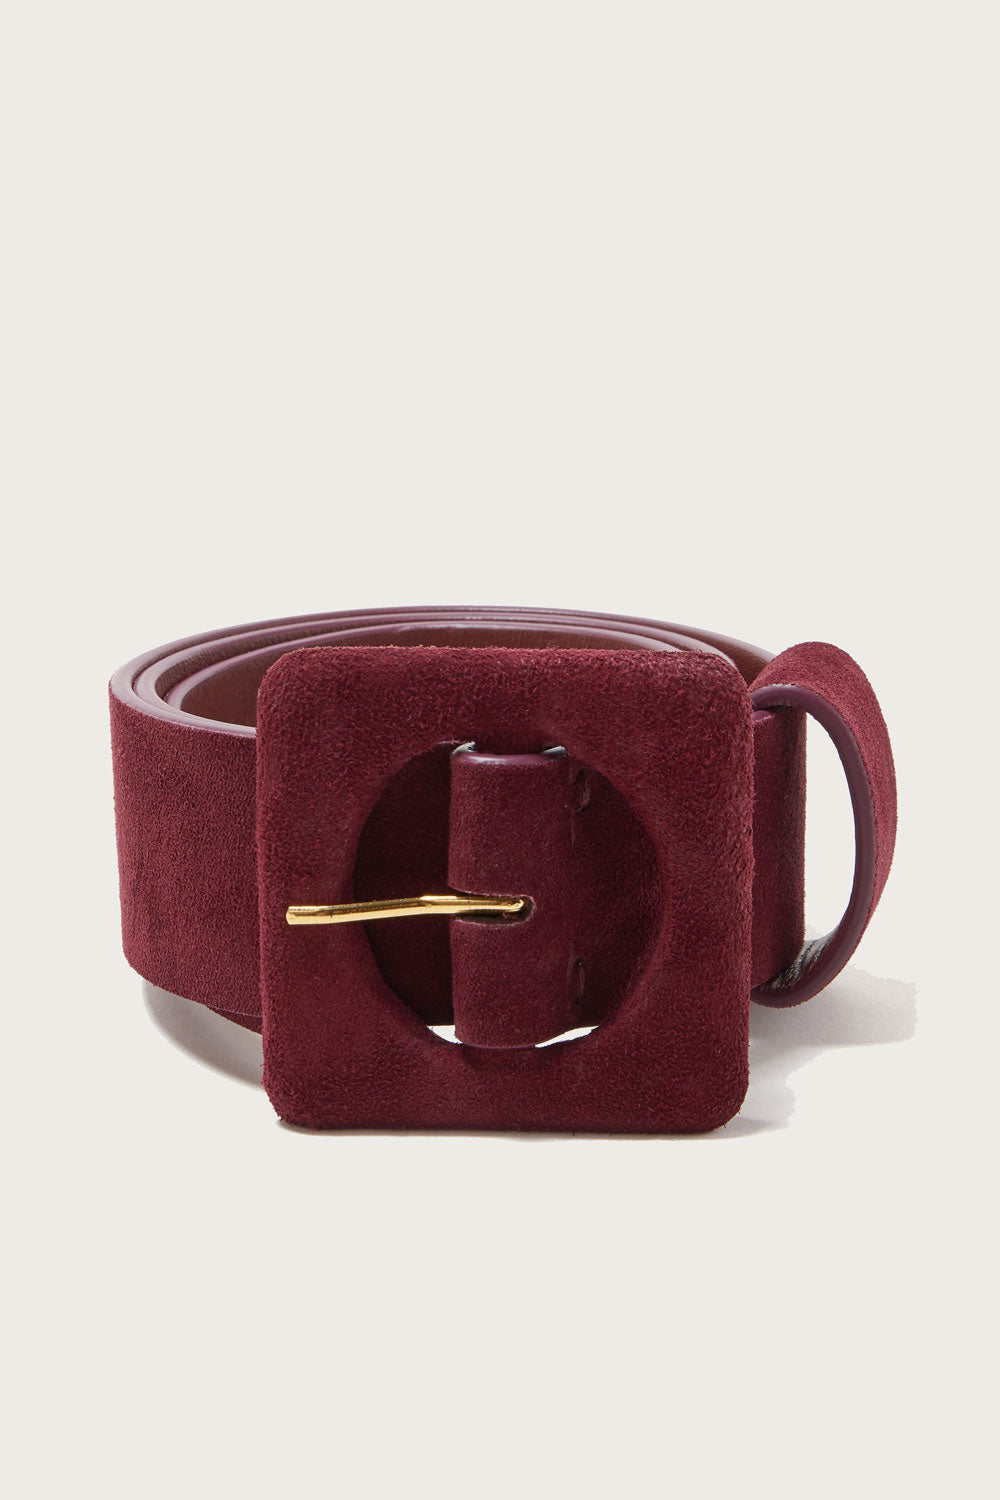 *Pre-Order* Agnes Belt in Burgundy